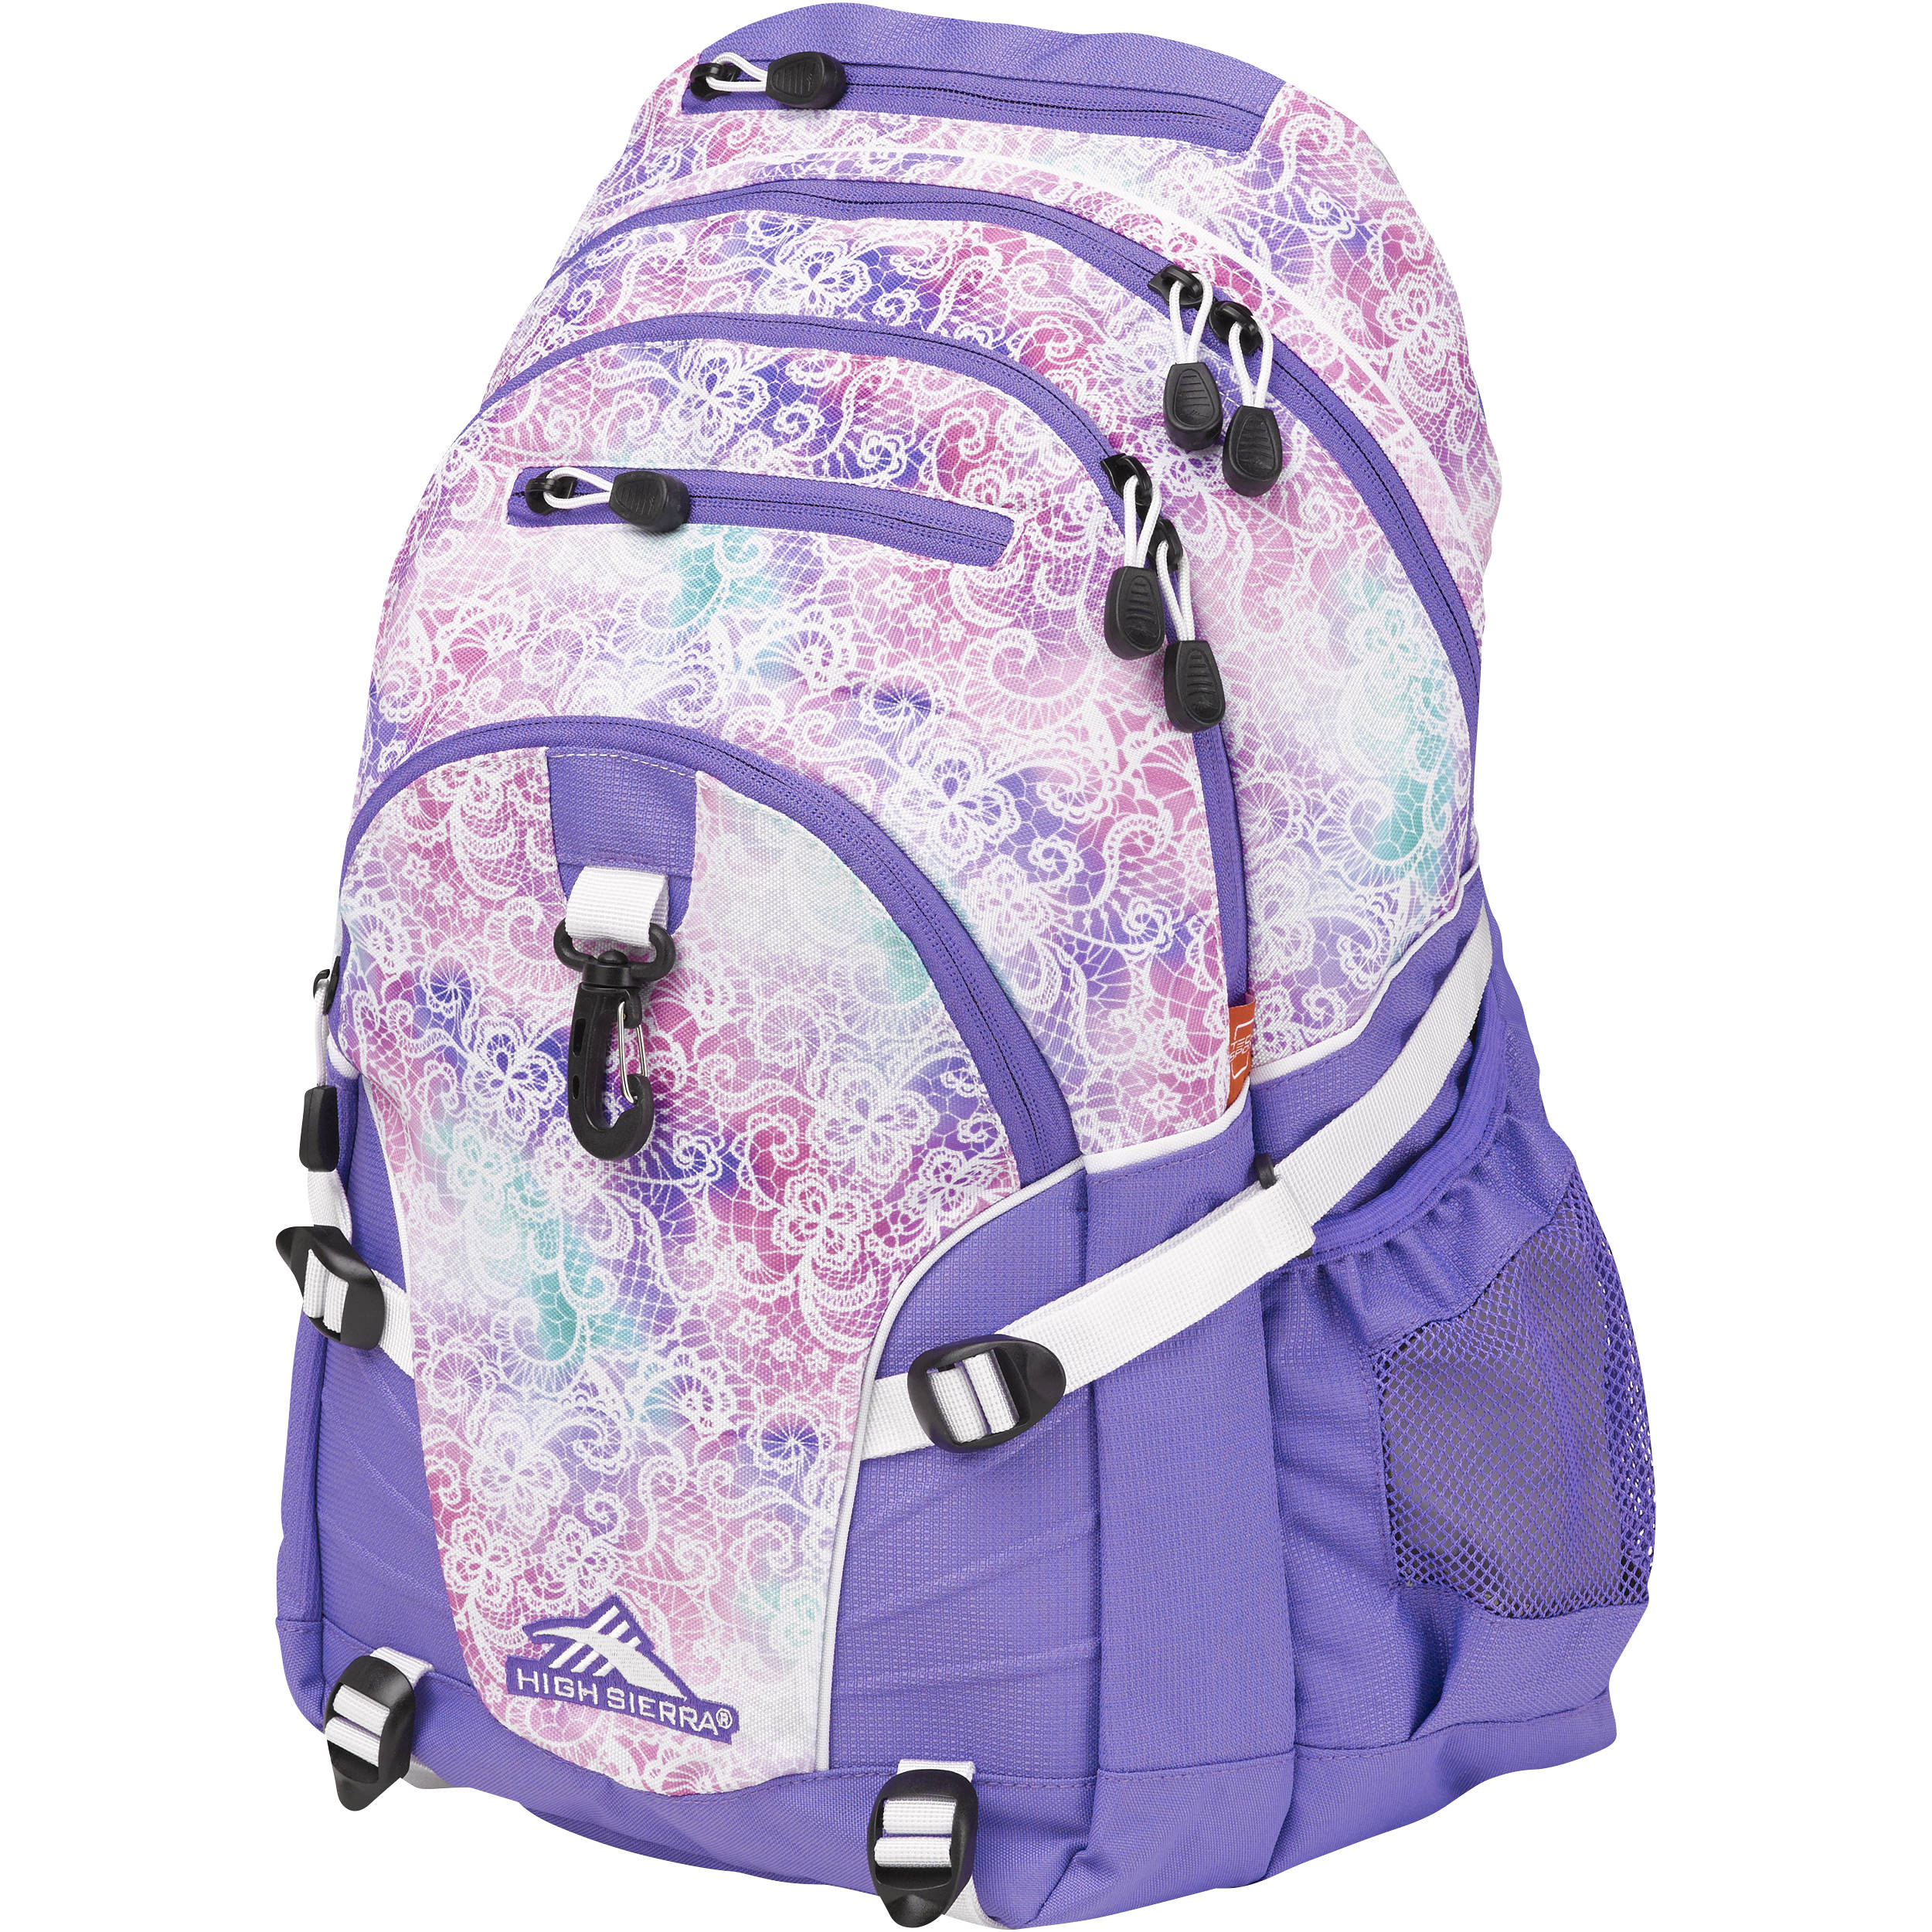 a96ad2471769 High Sierra Loop Backpack (Delicate Lace / Lavender / White)